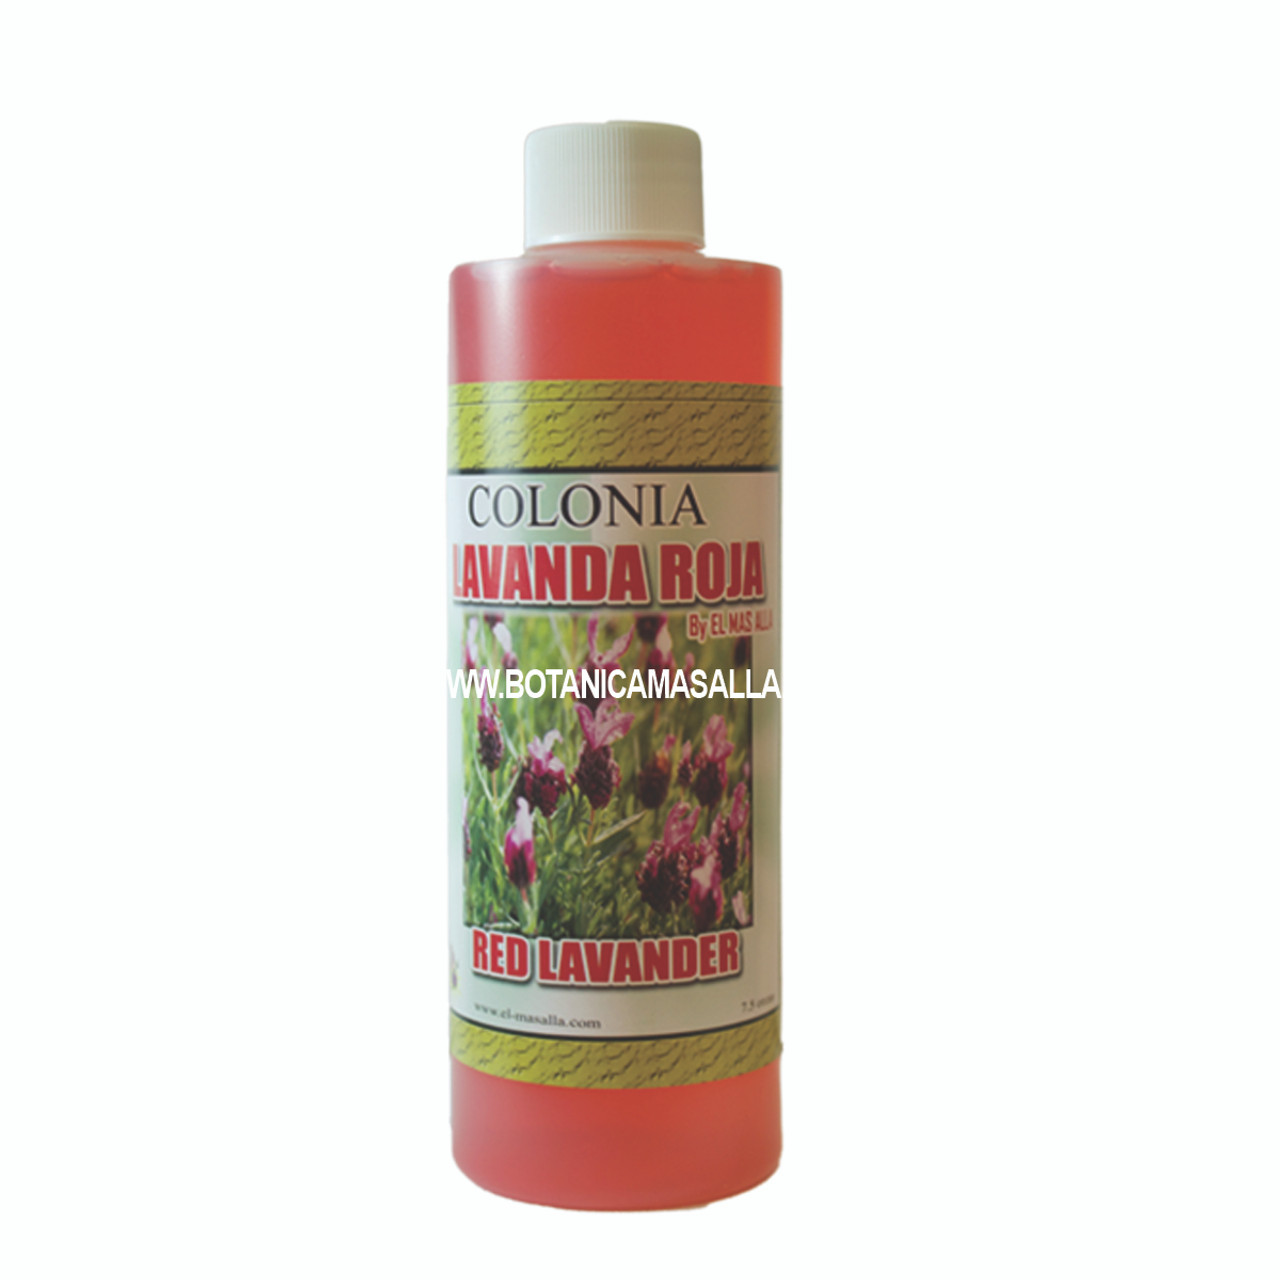 Colonia Lavanda Roja (Red Lavander)